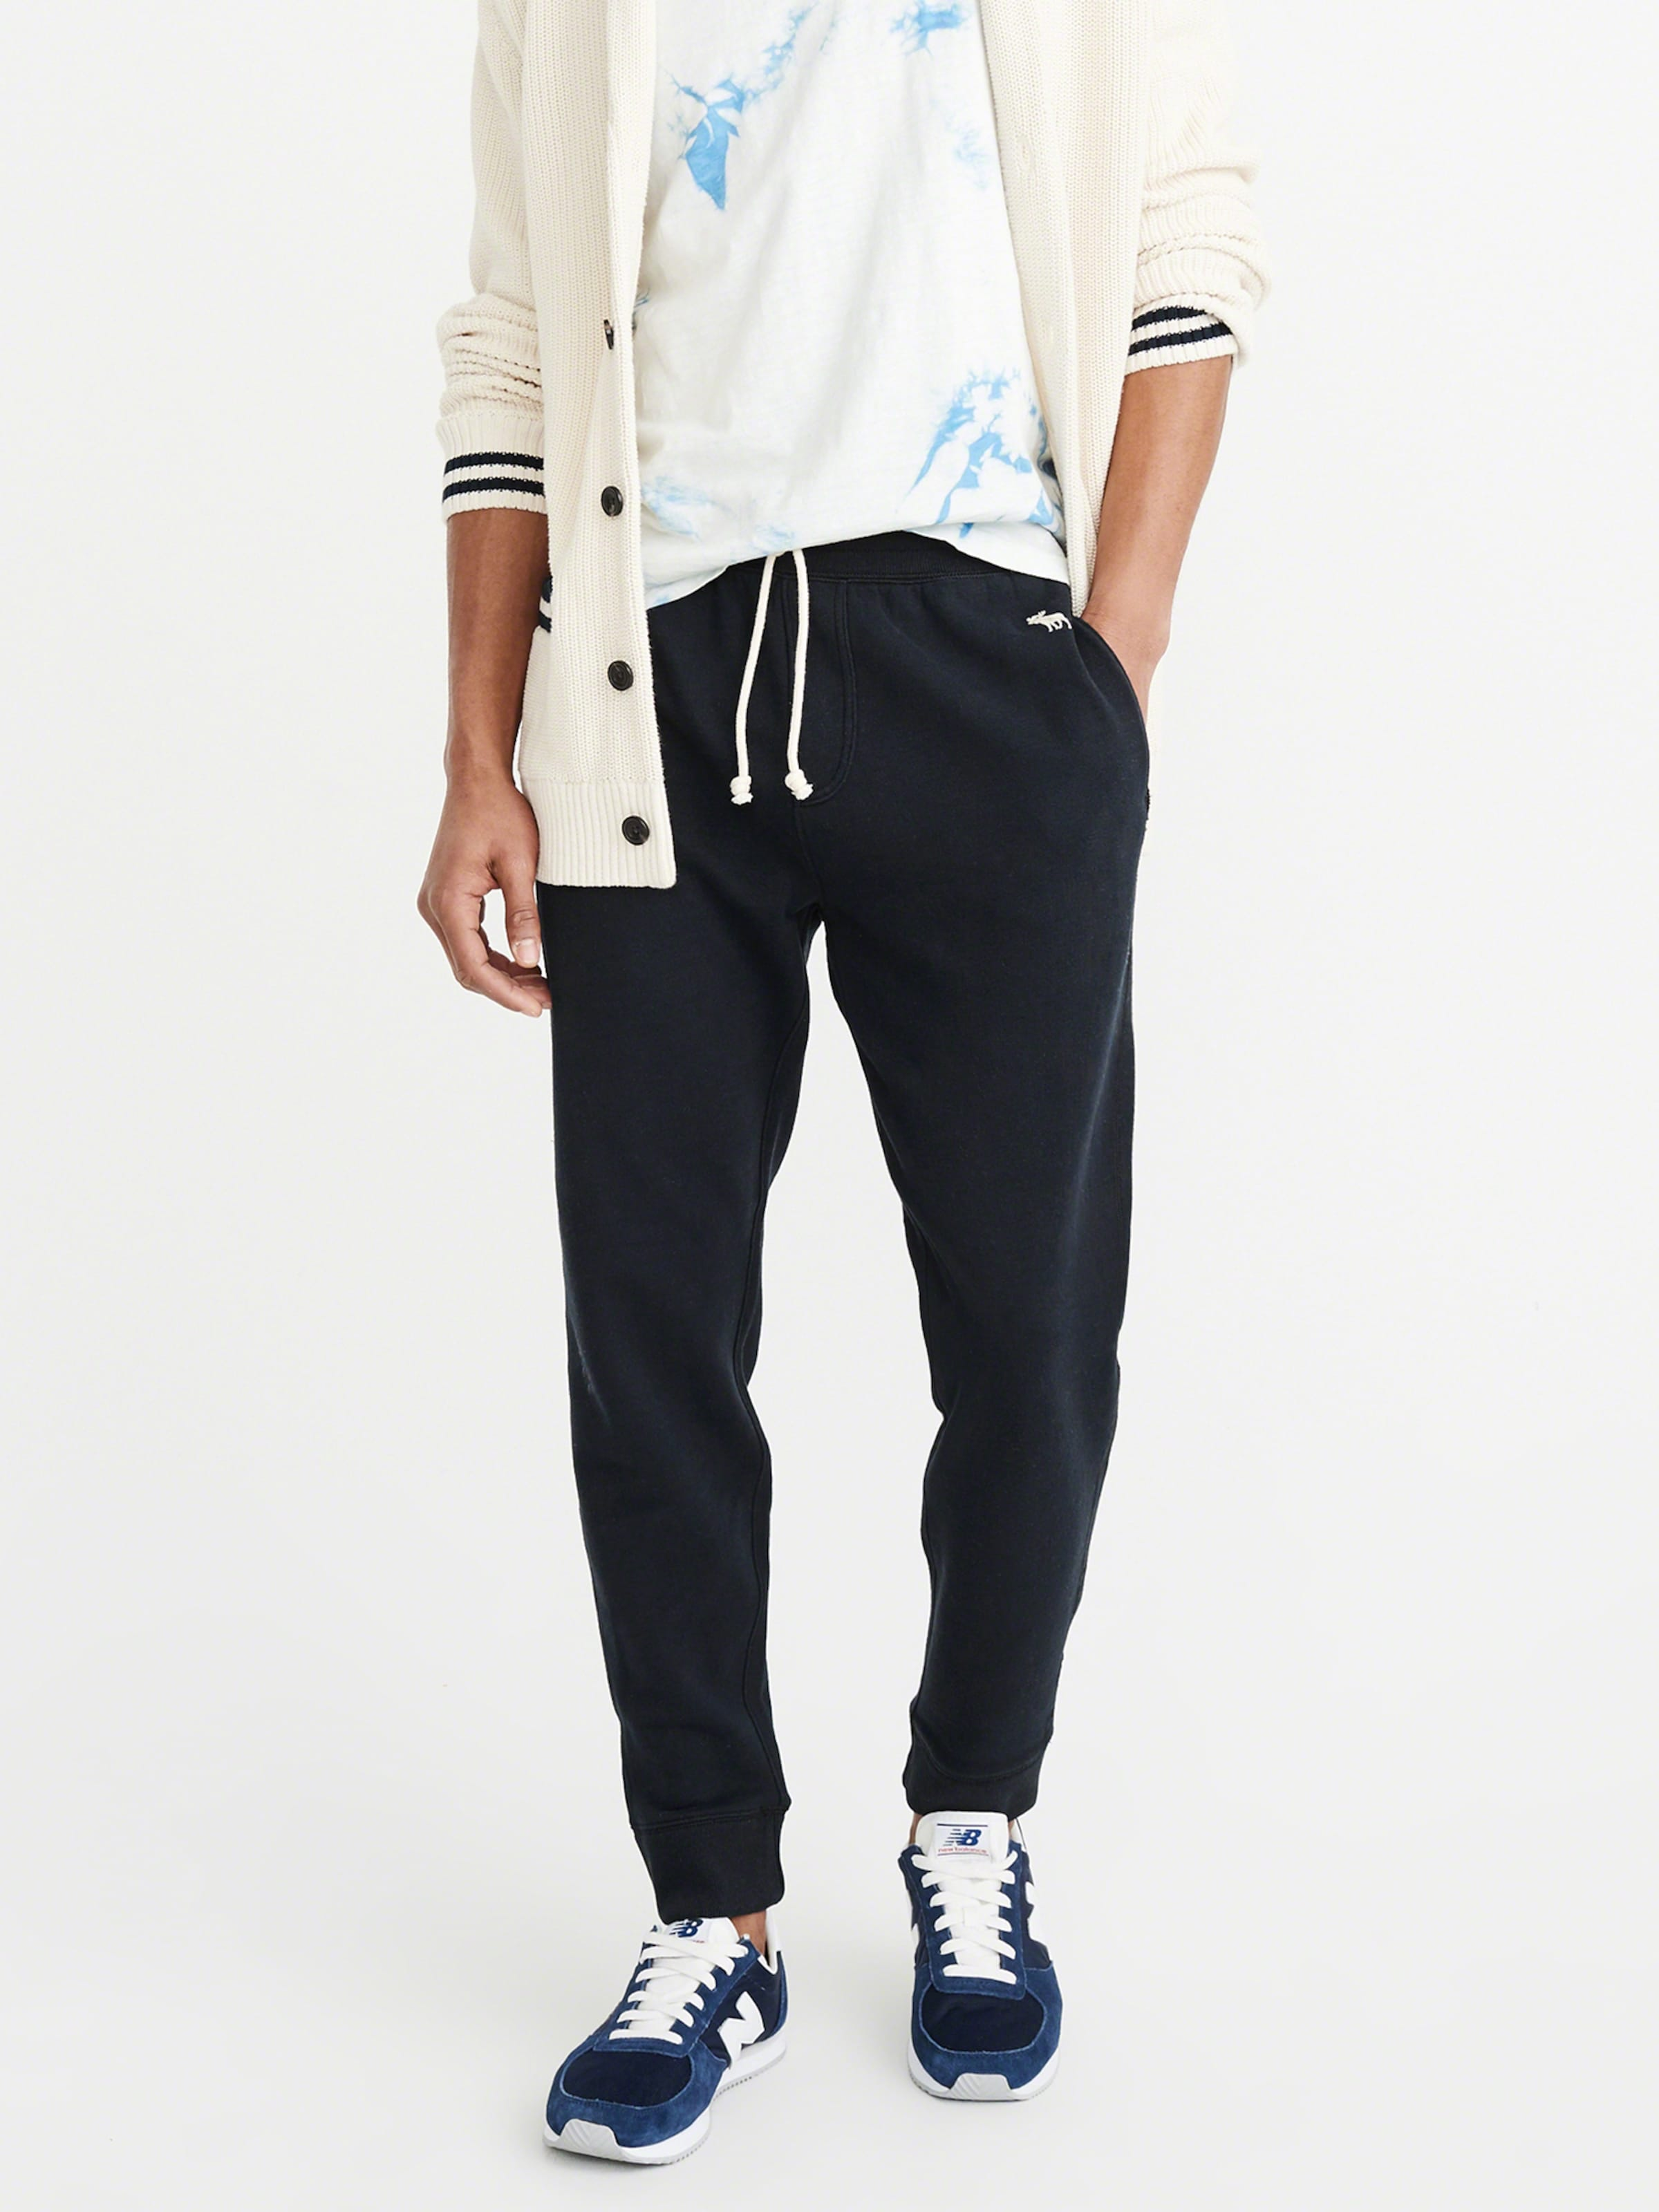 'core Fitch In Essential 3cc' Abercrombieamp; Jogger Sweathose Navy MUjLqSzpVG